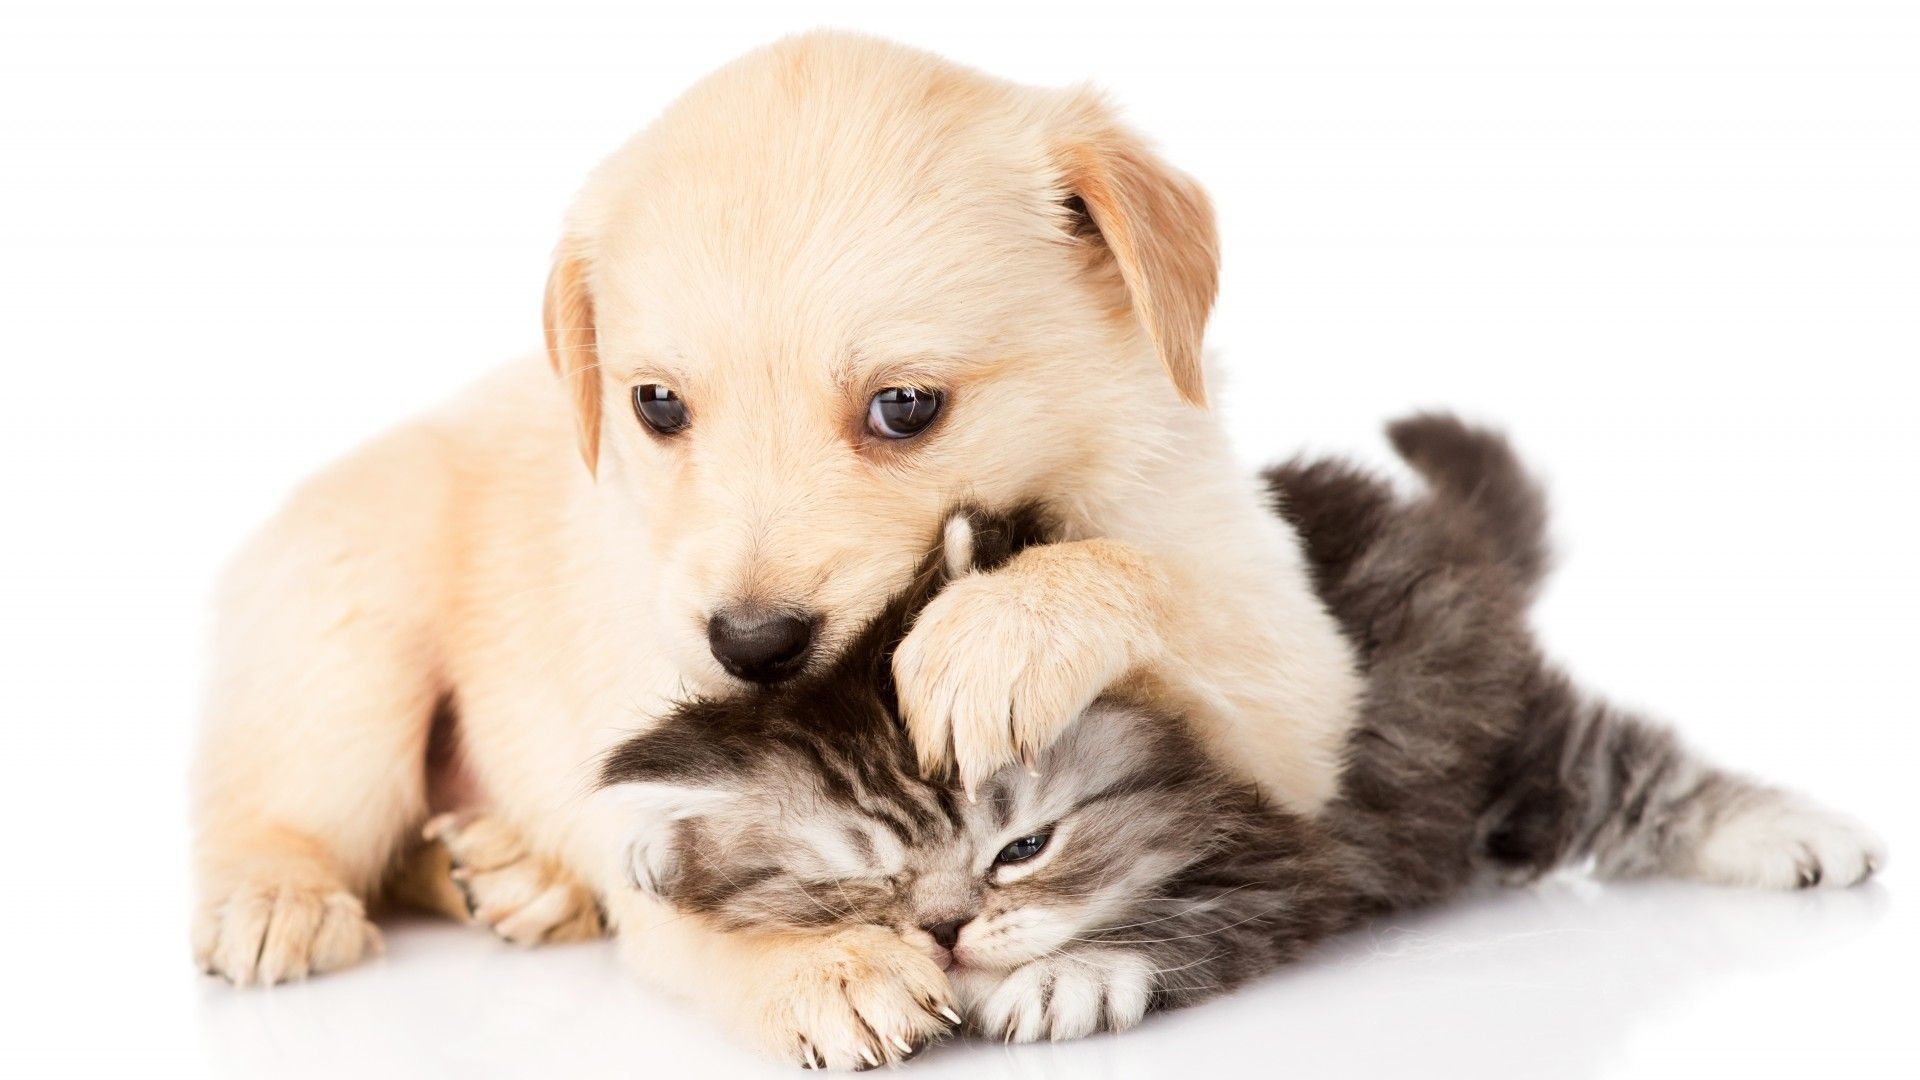 Wallpaper puppy and kitten, battle, chihuahua, white background HD